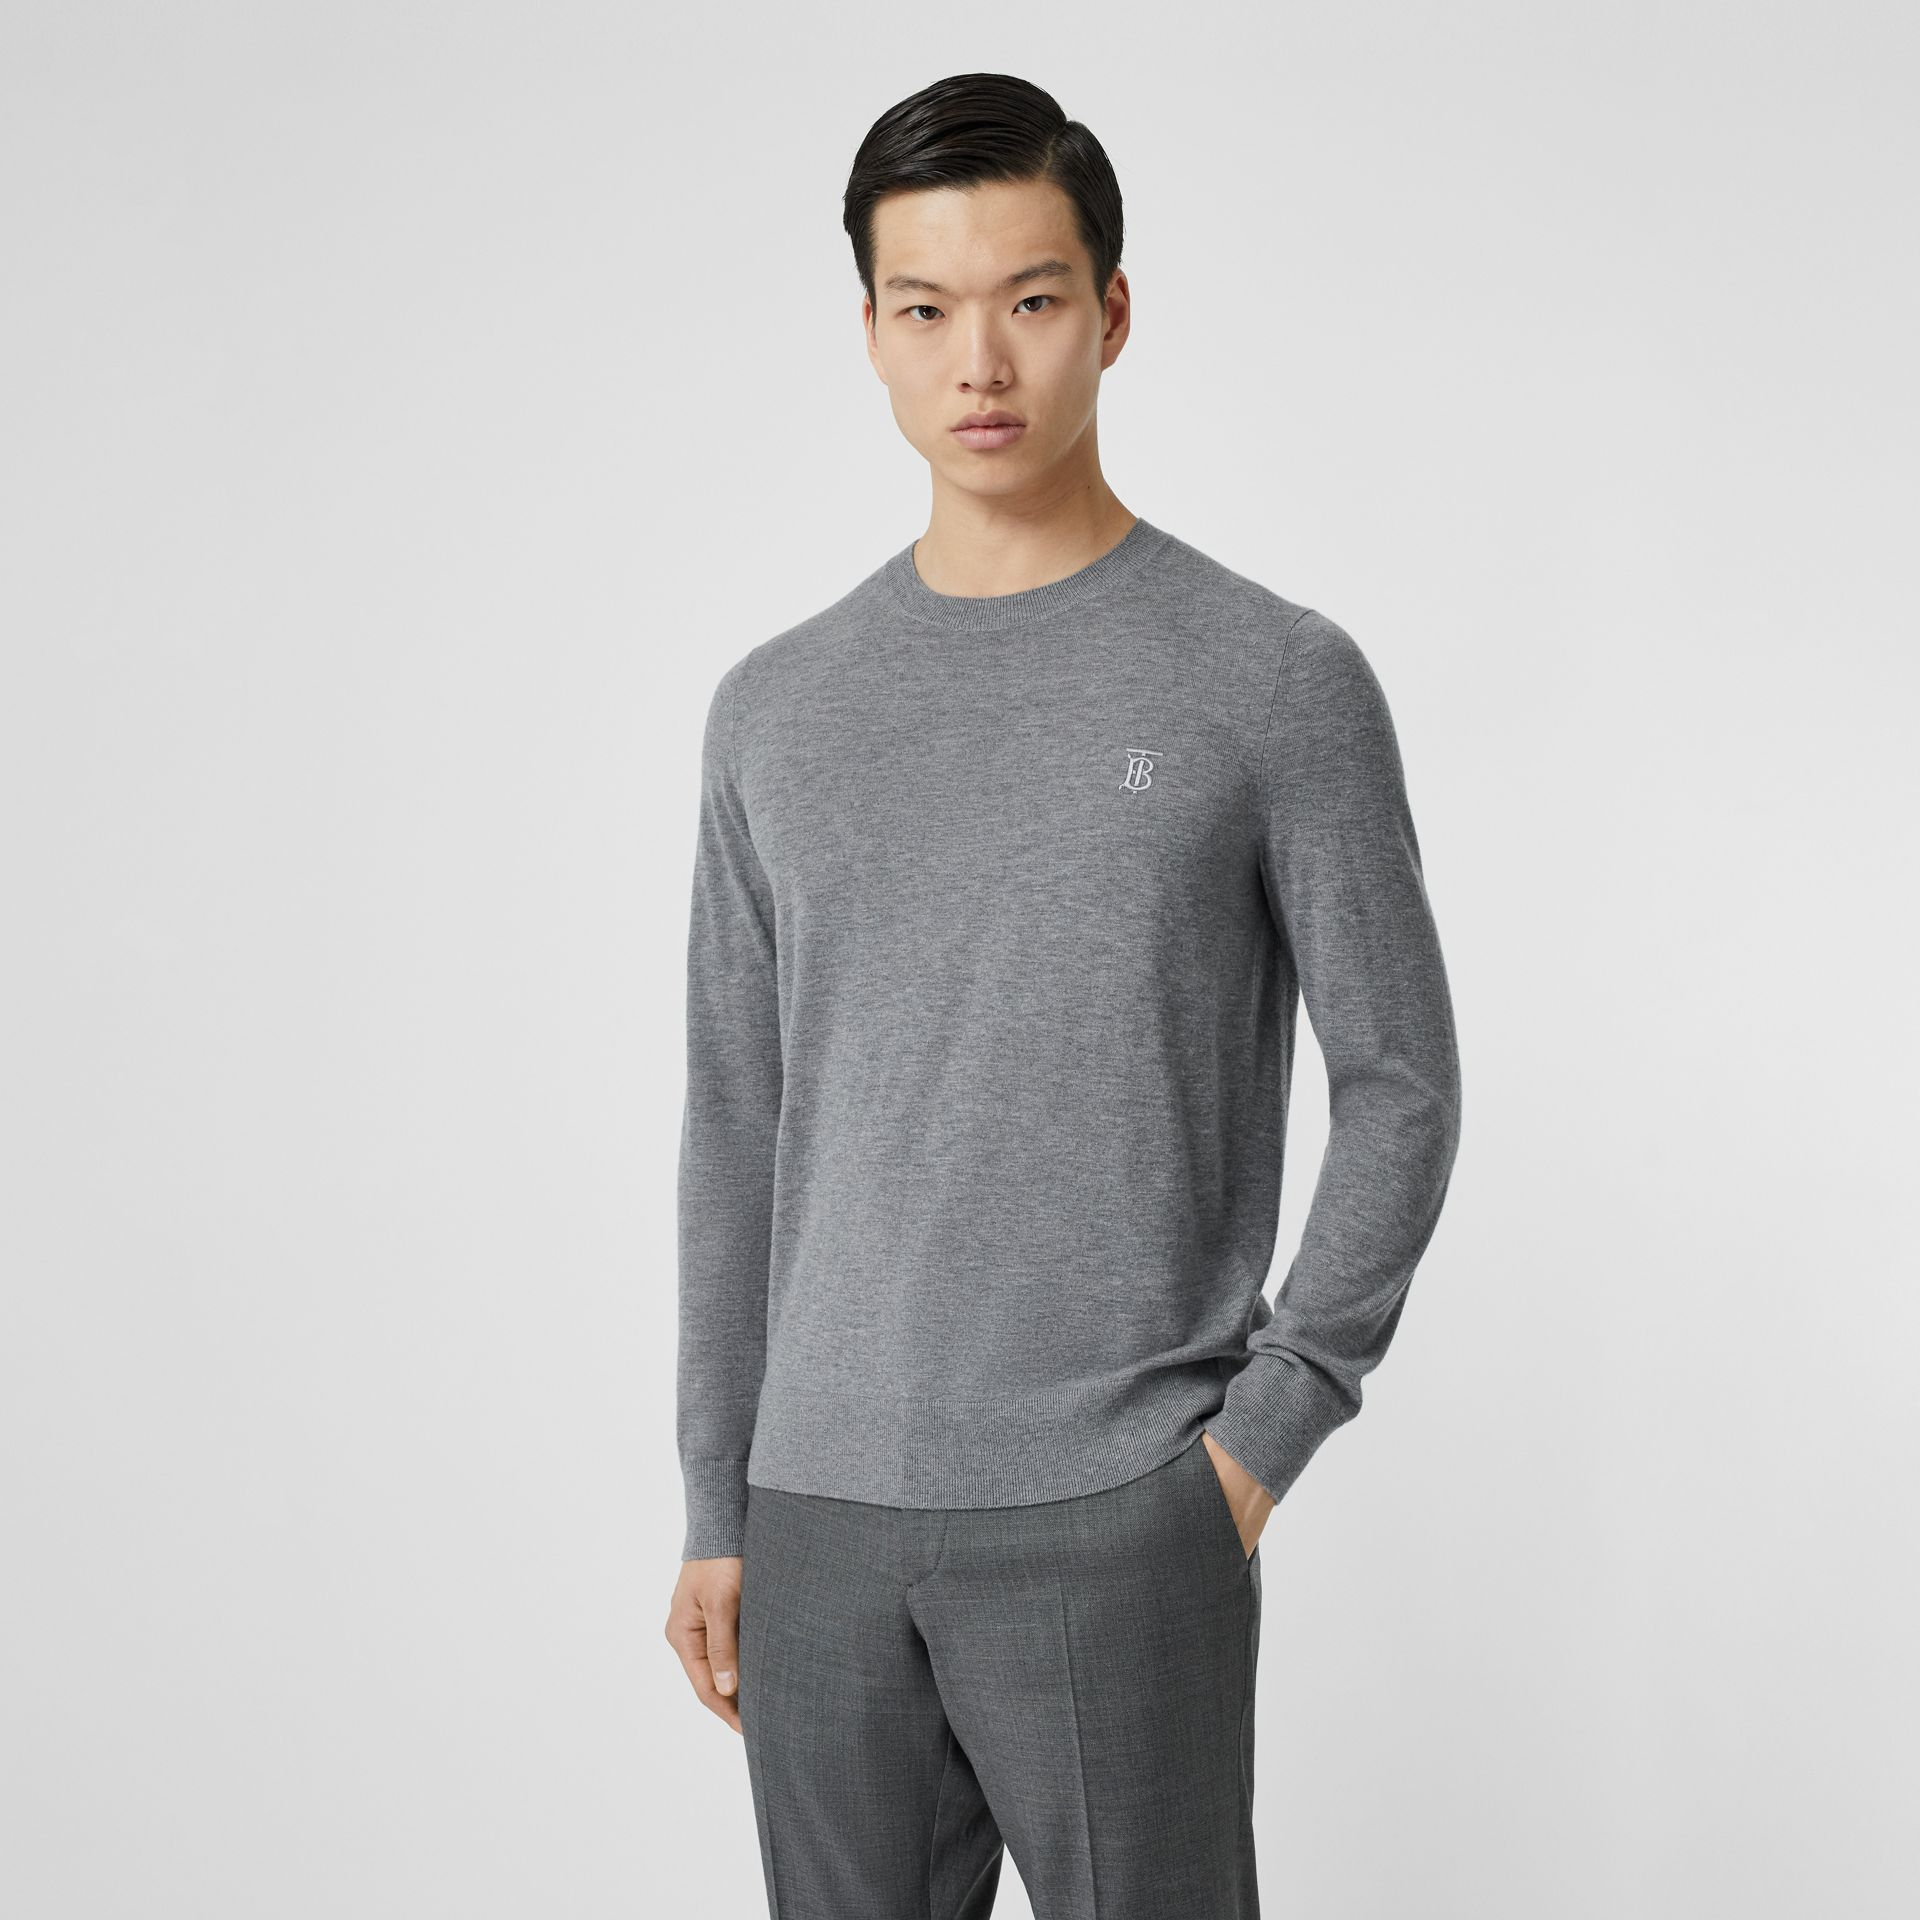 Monogram Motif Cashmere Sweater in Pale Grey Melange - Men | Burberry Singapore - gallery image 4